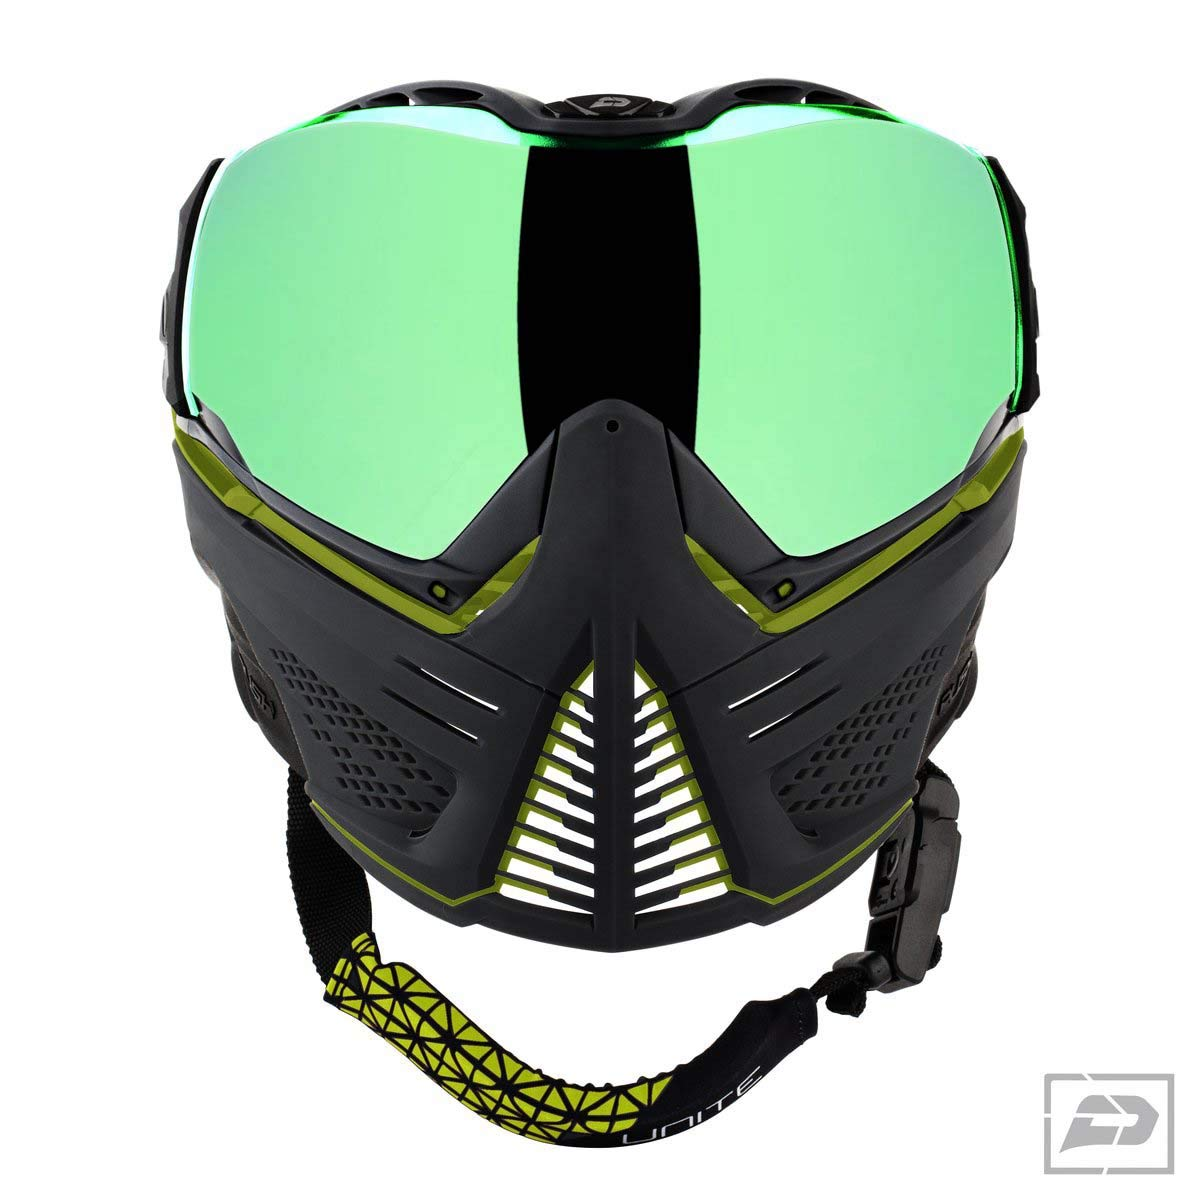 Push Unite Paintball Goggles & Case - Lime/Black by Push Paintball